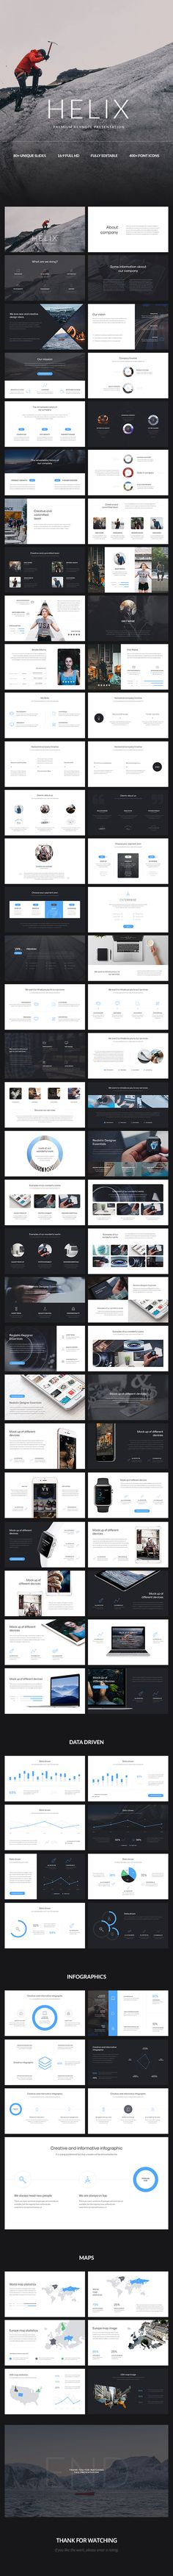 Buy Helix PowerPoint Presentation by Entersgee on GraphicRiver. Our presentation will provide a level of decision-making by higher than that of counterparts, and to prepare f. Keynote Design, Ppt Design, Slide Design, Deck Design, Layout Design, Keynote Presentation, Design Presentation, Presentation Templates, Presentation Slides